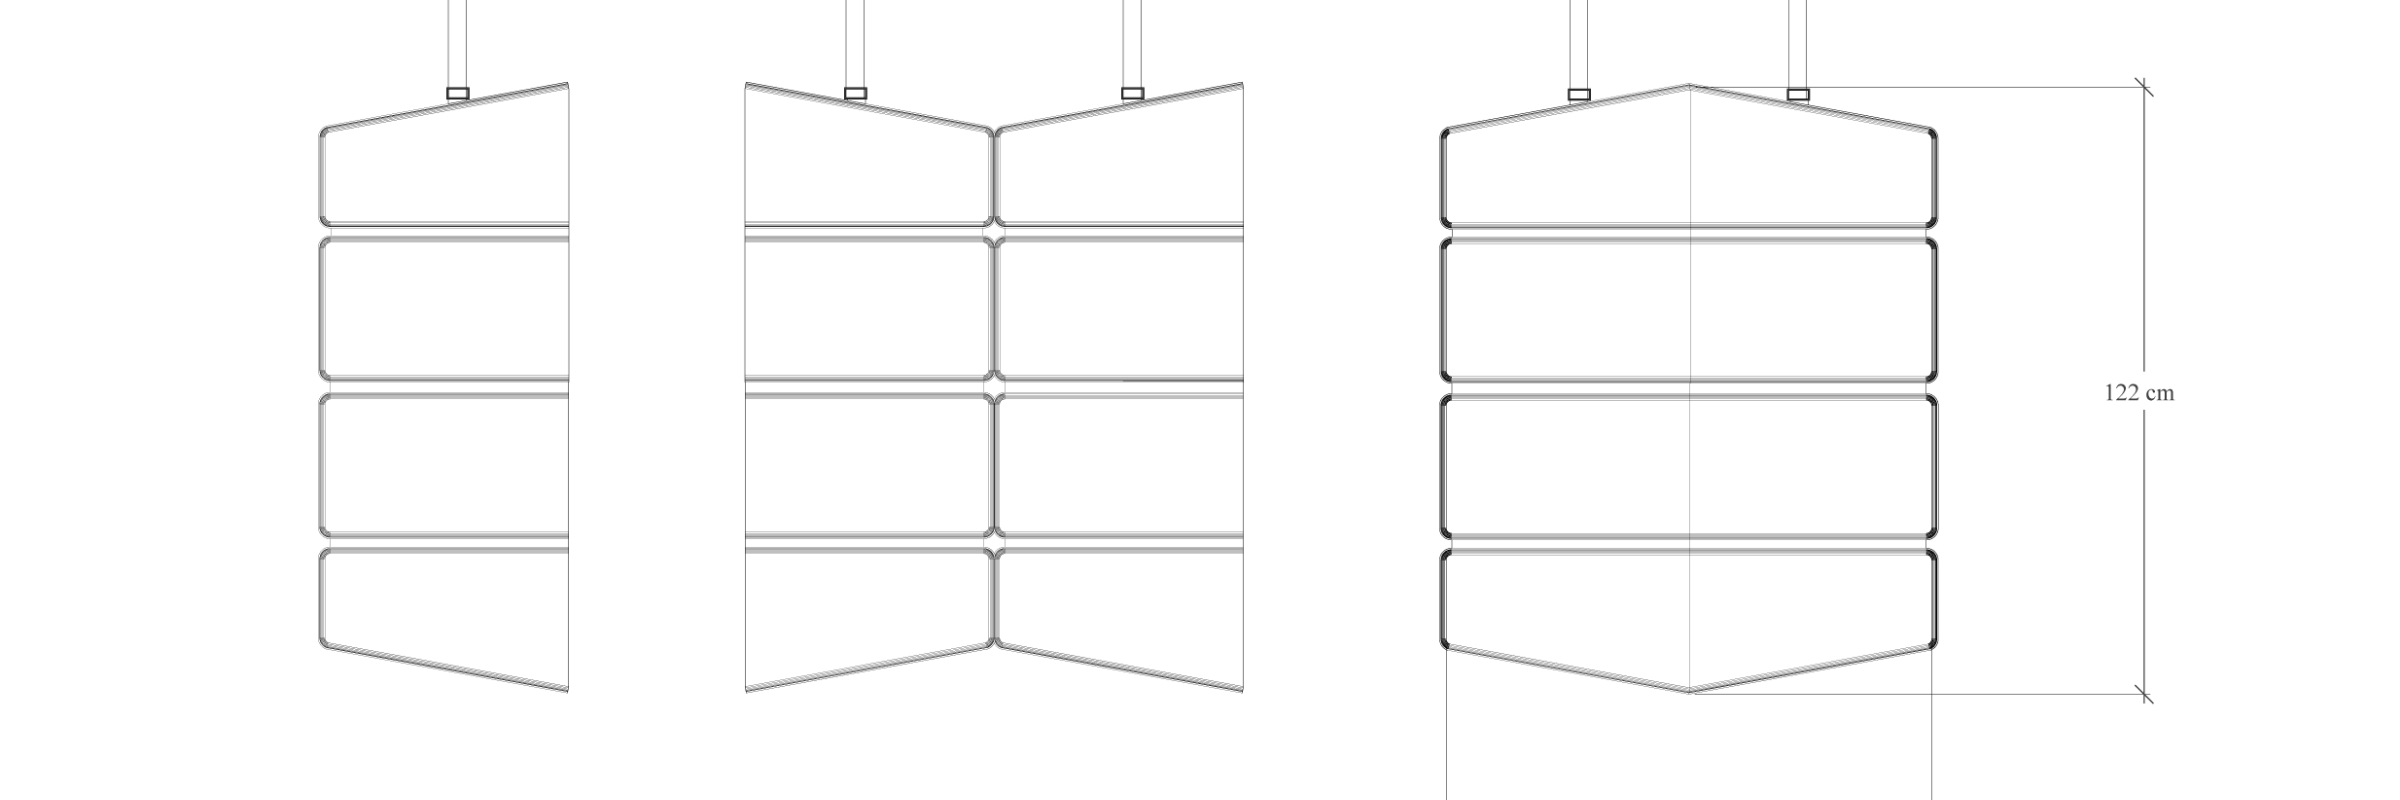 Dimensions acoustic screen